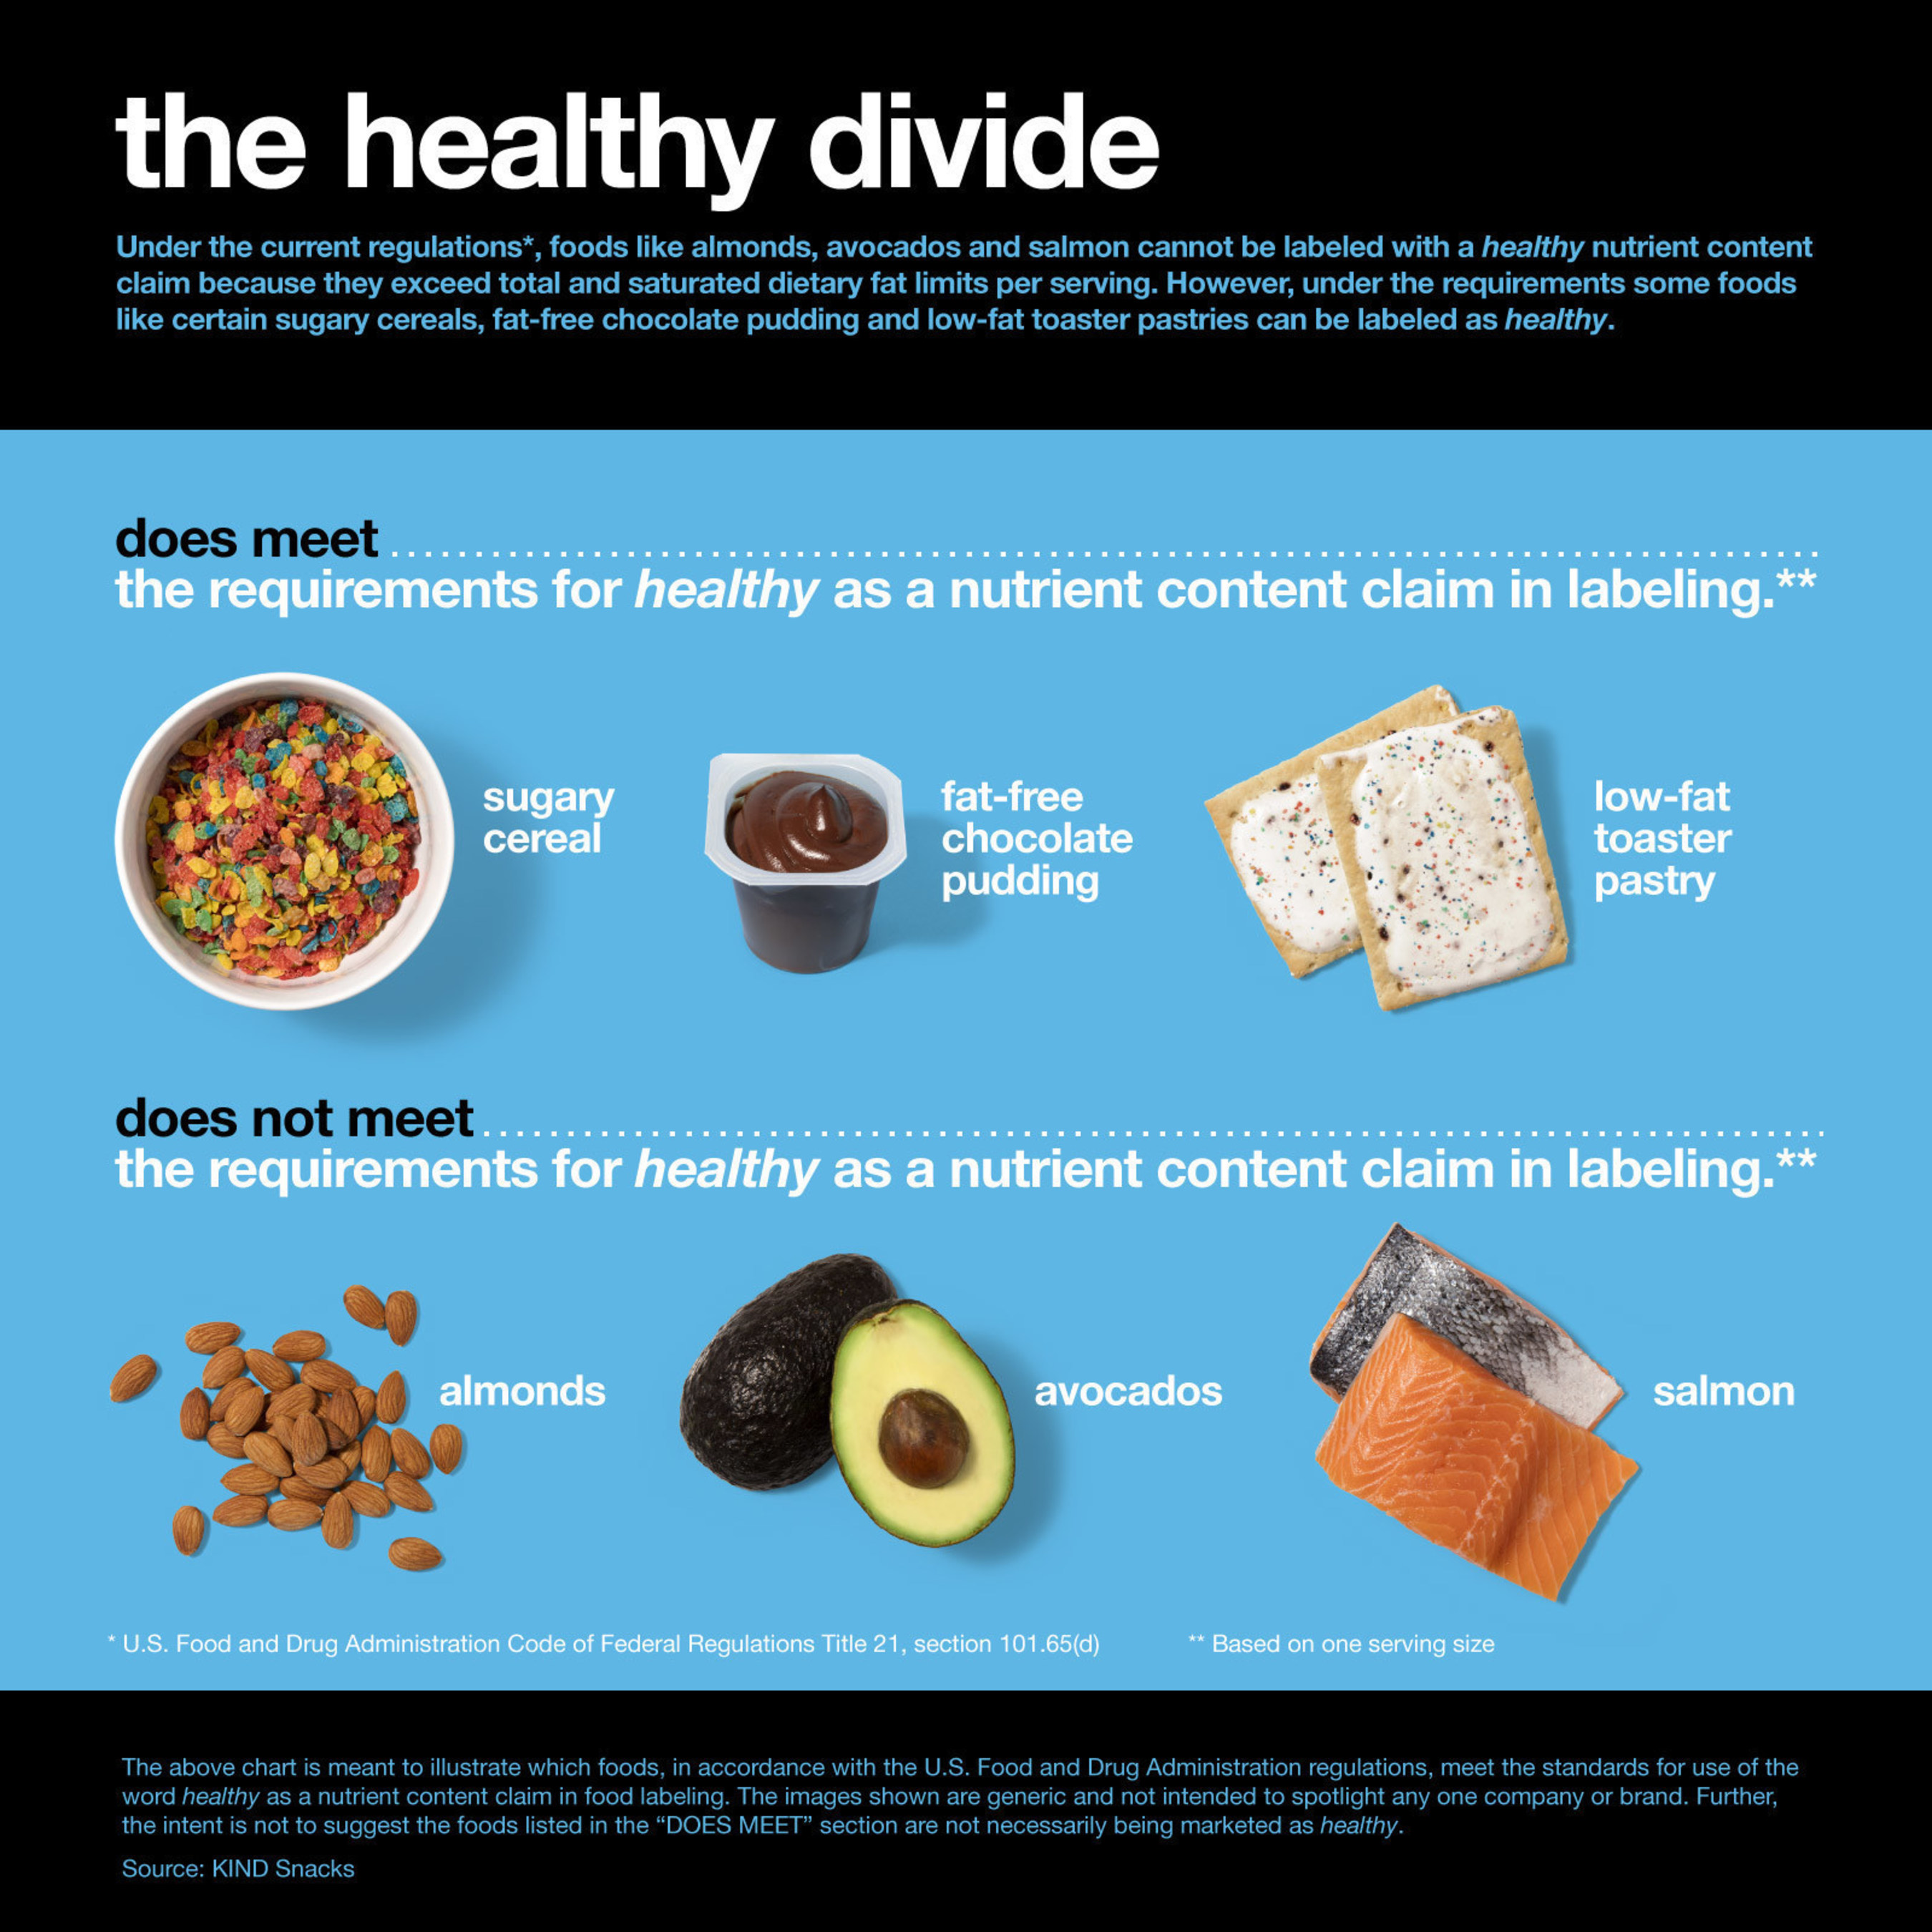 """KIND urges the U.S. Food & Drug Administration to bring food regulations up to date with current science to recognize nutrient-dense foods as """"healthy."""""""